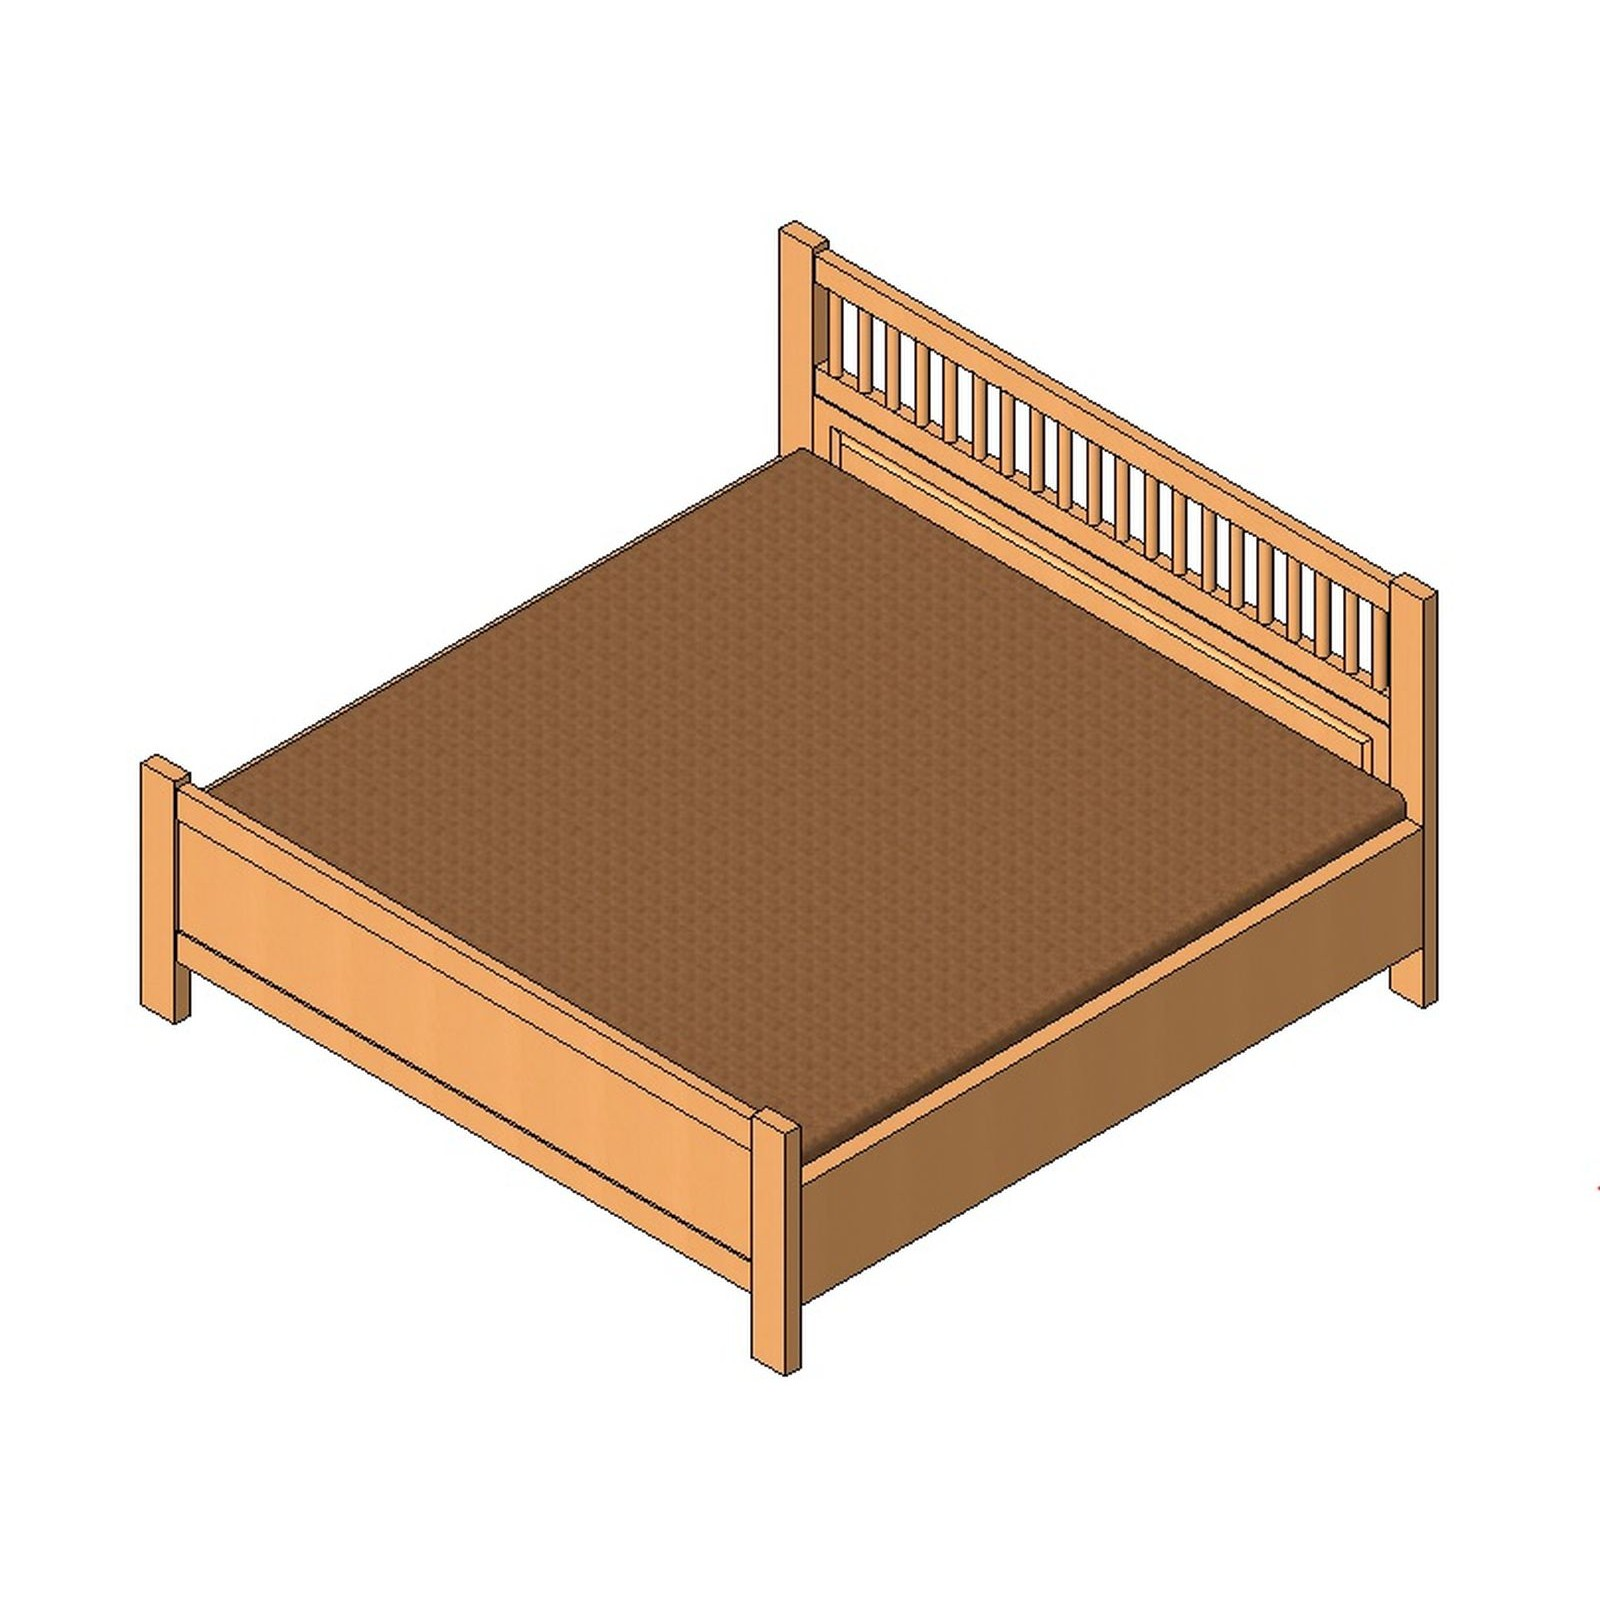 King bed type 4 design content Types of king beds